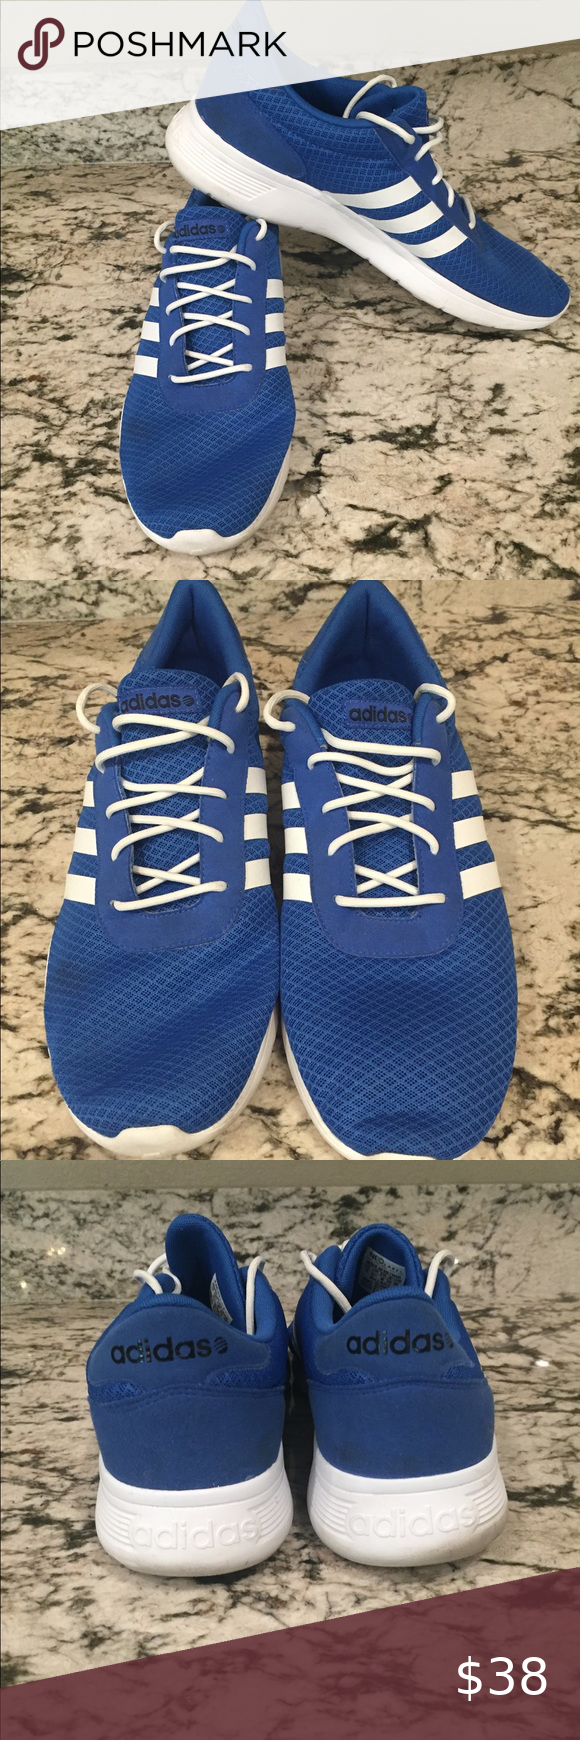 Adidas men trainers- size 13 | Mens trainers, Adidas men, Shoes ...